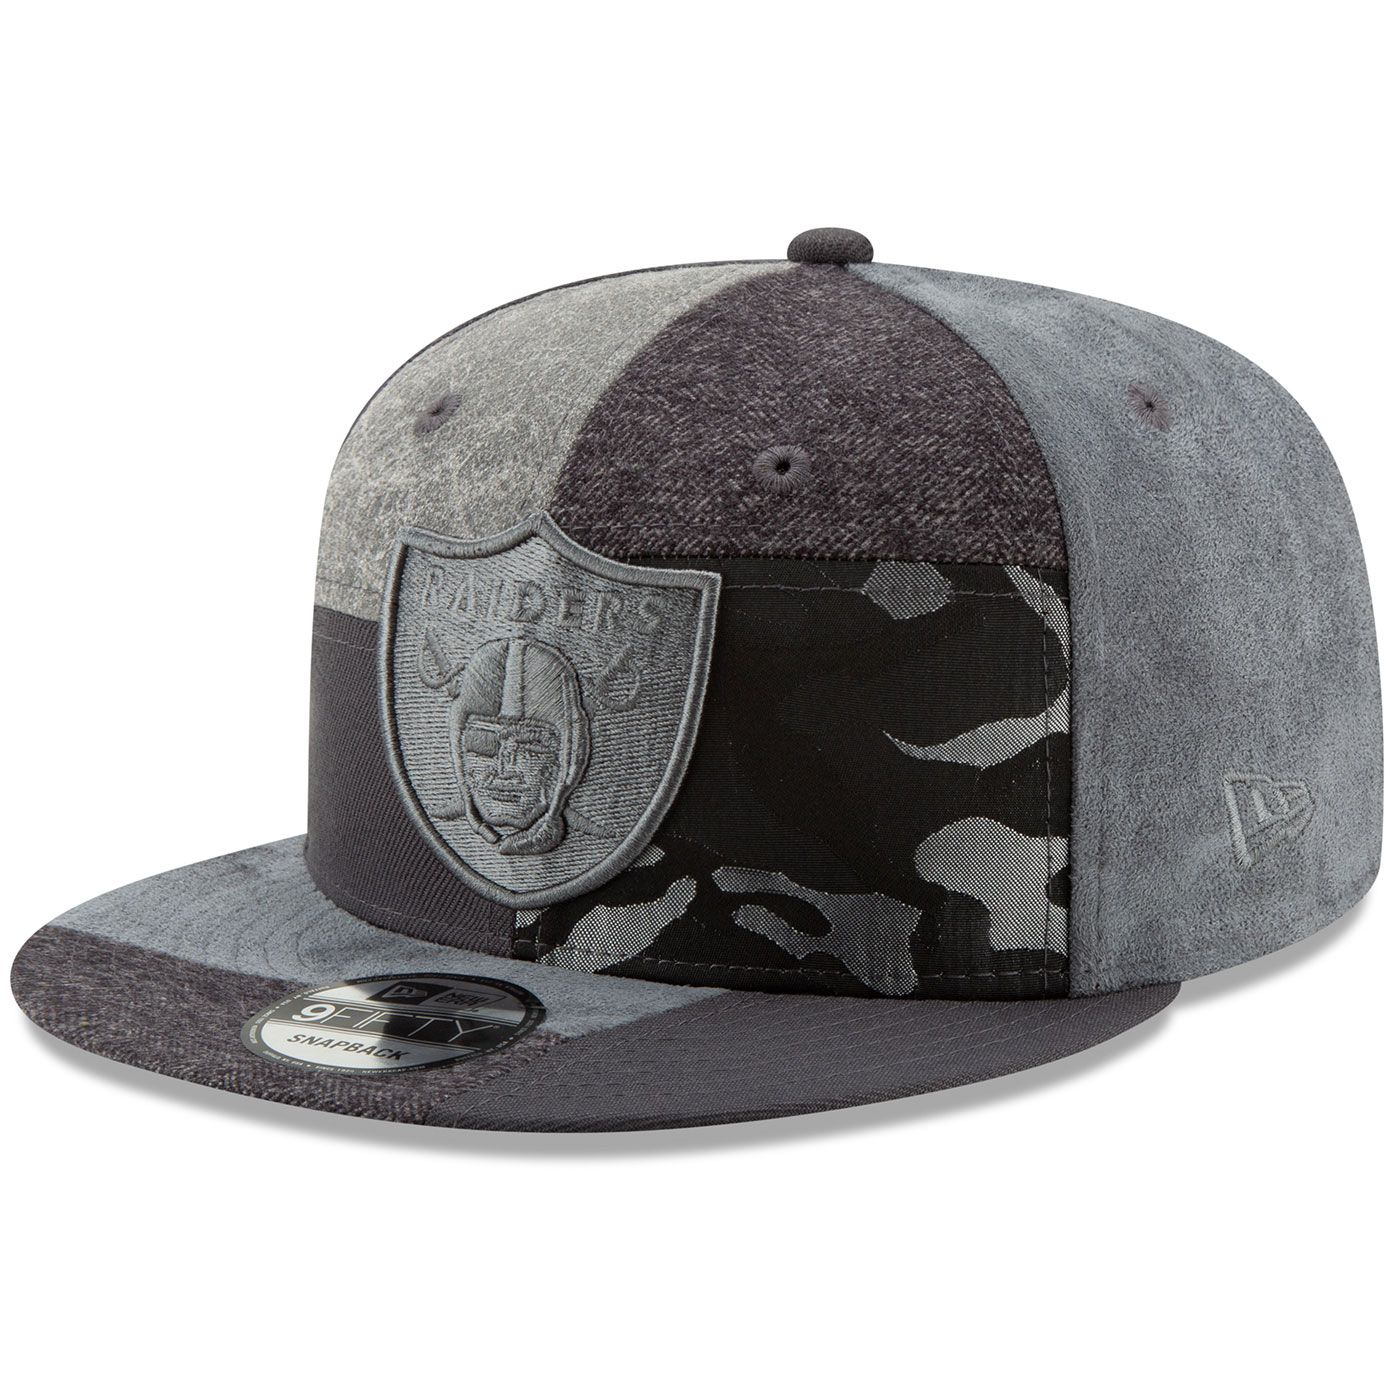 purchase cheap ad04e 69270 Raiders New Era 9Fifty Premium Patched Cap